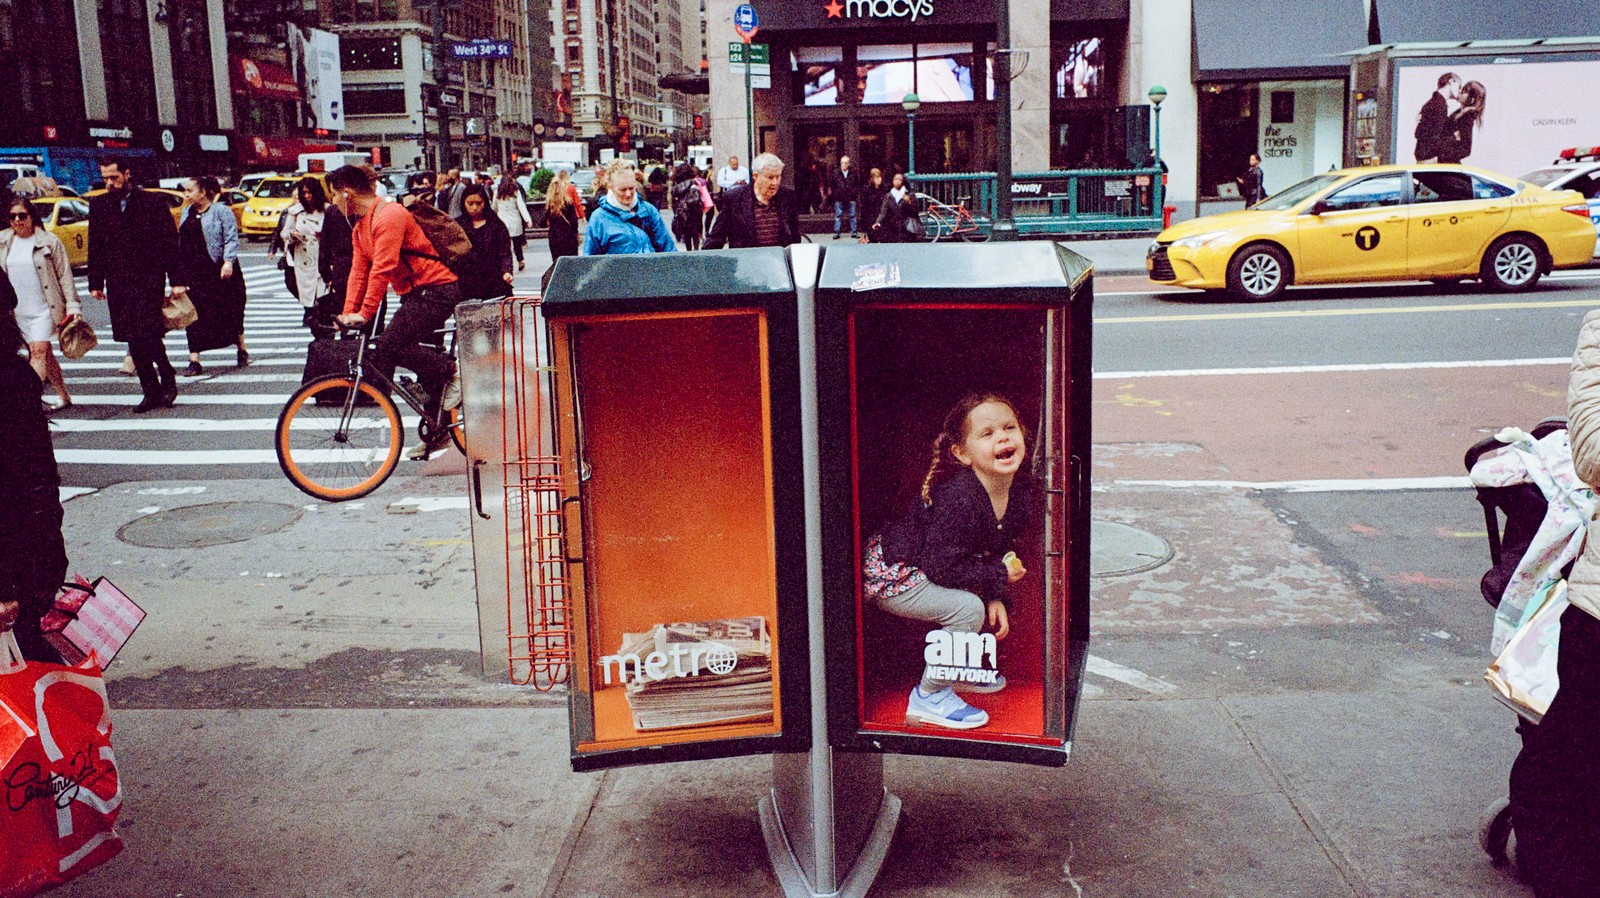 This Street Photographer Finds Perfect, Spontaneous Moments on NYC's Sidewalks